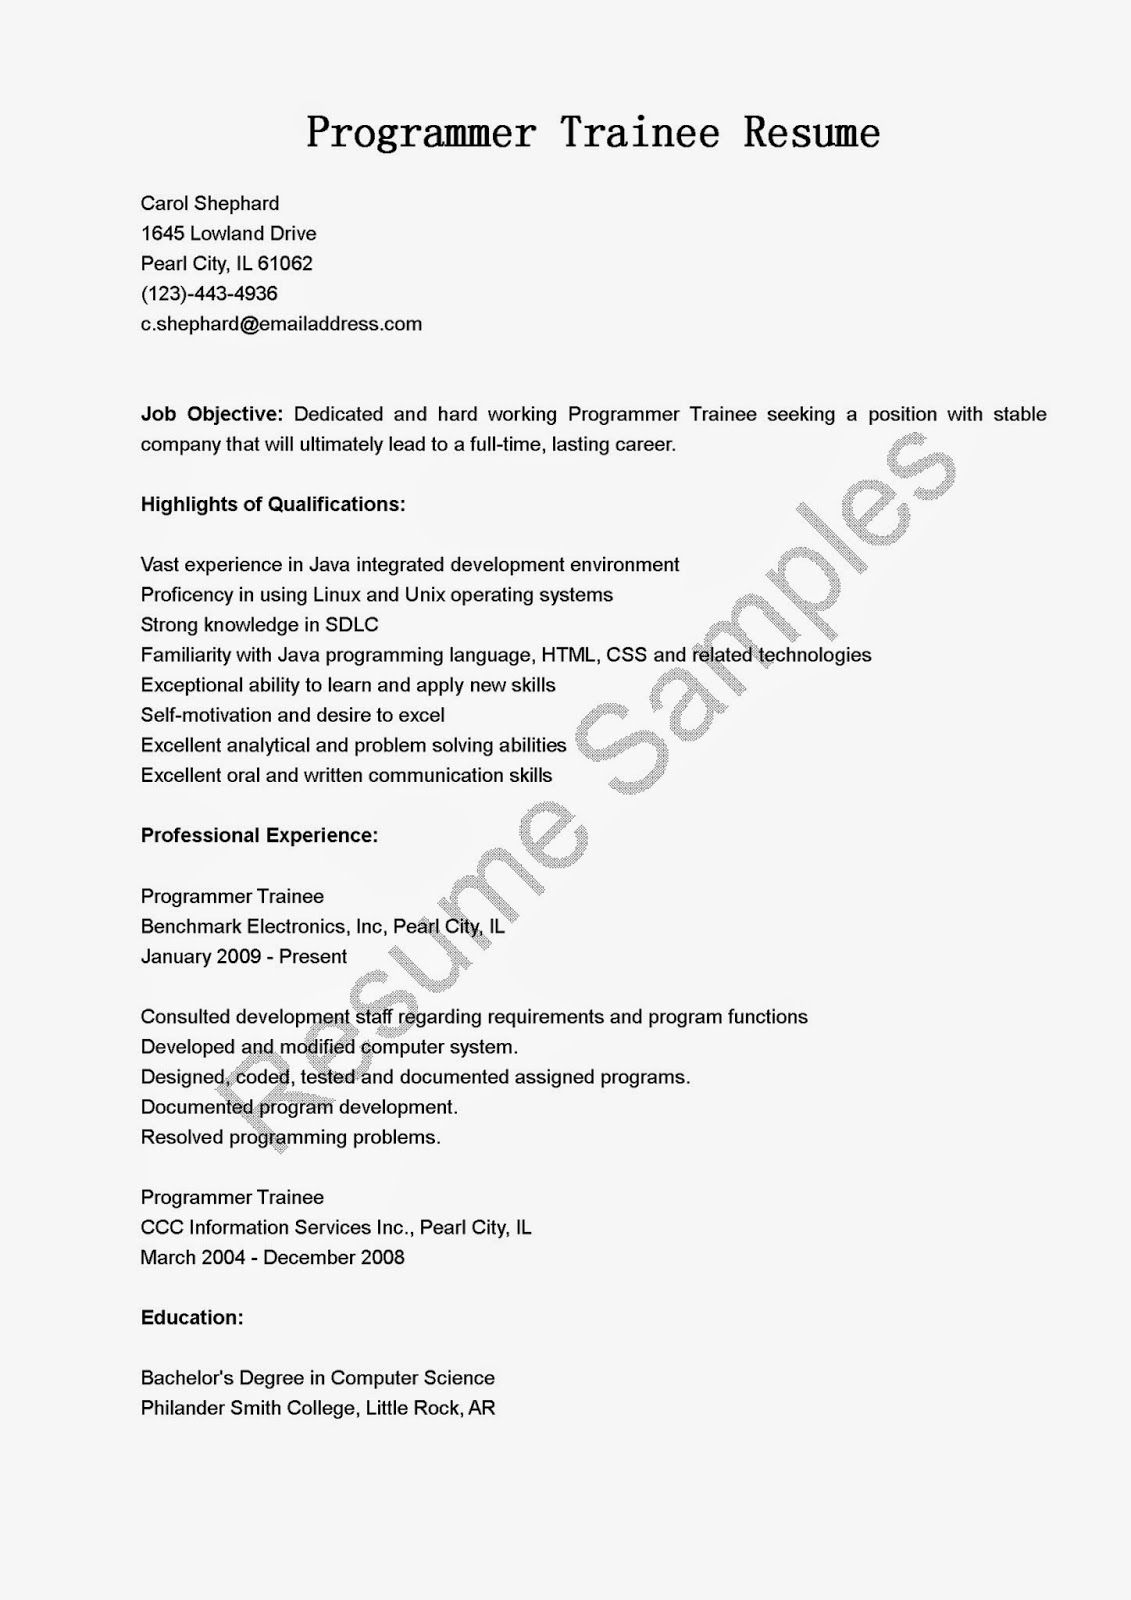 Programmer Trainee Resume Sample |Resume Samples | resame ...